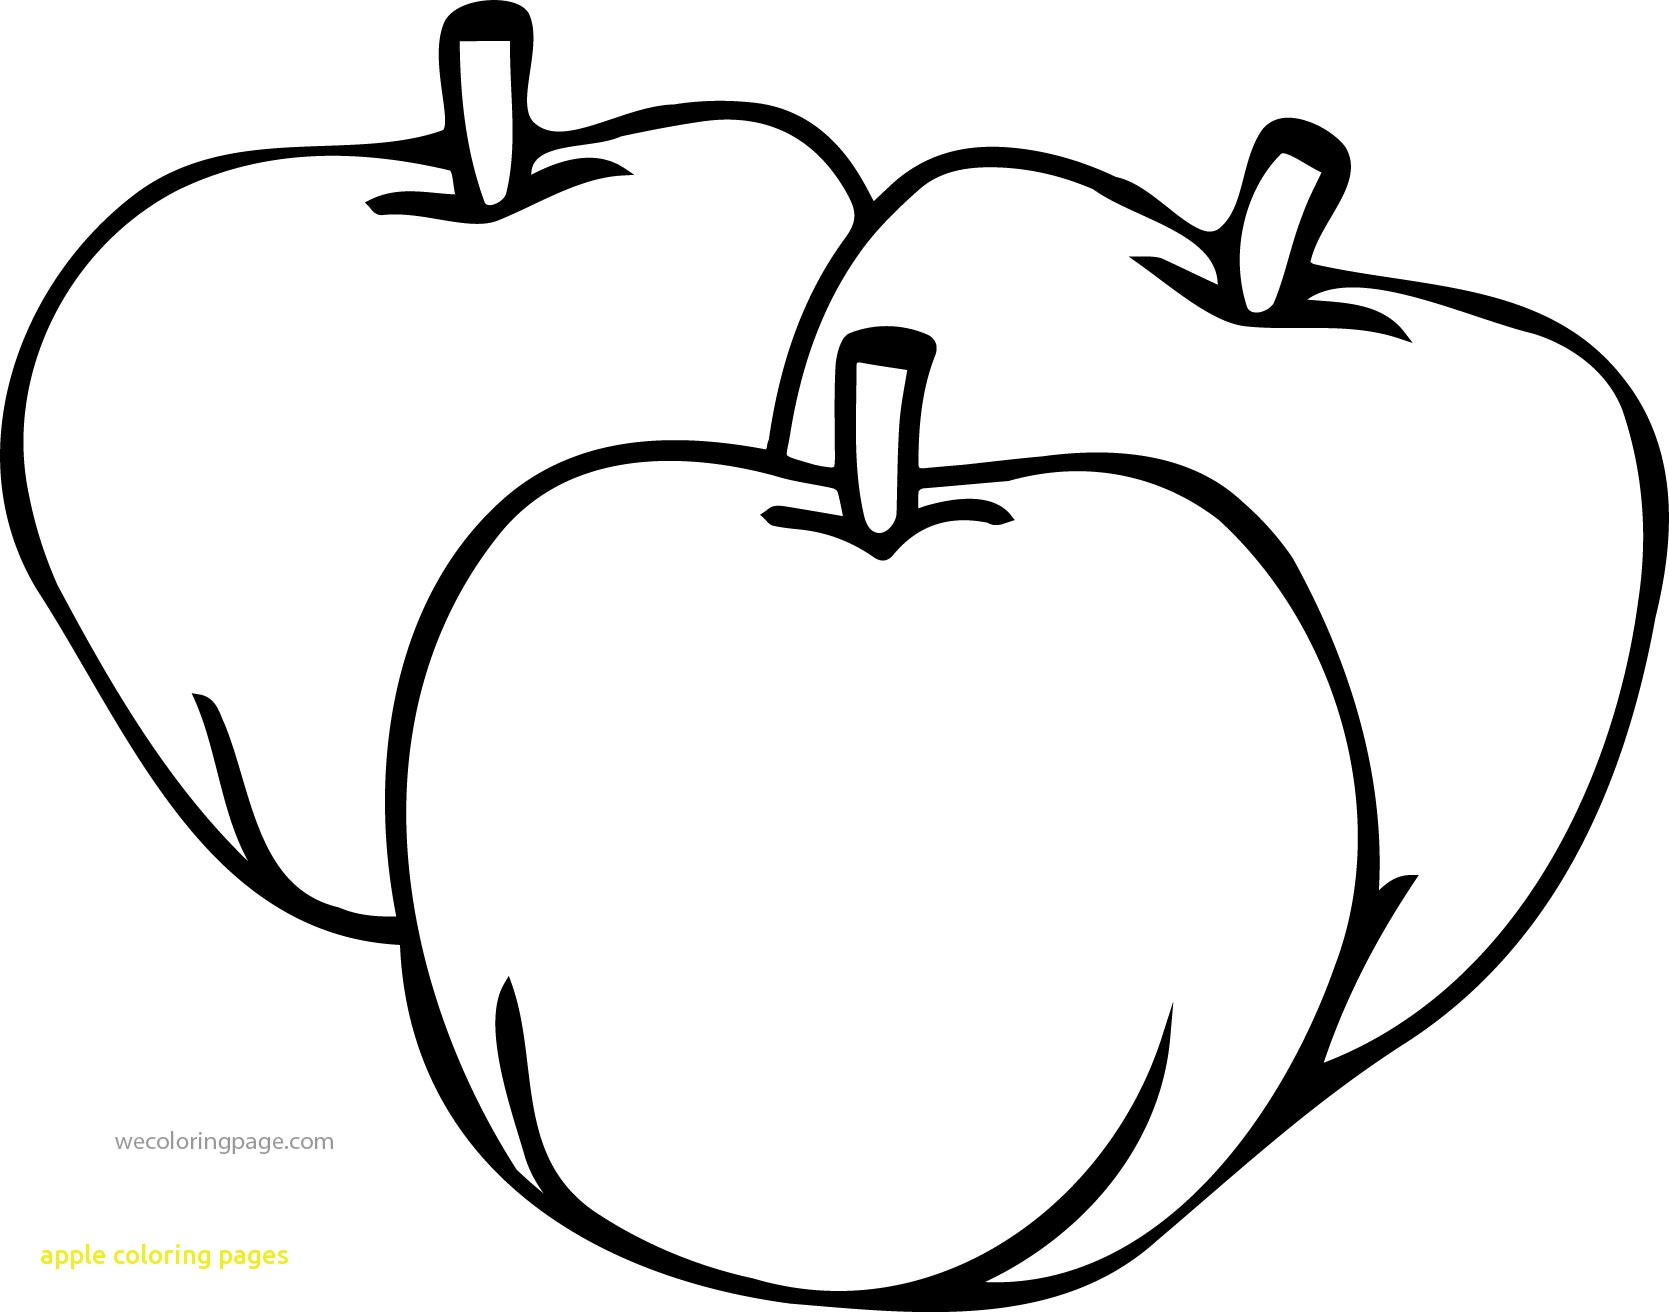 coloring apple free printable apple coloring pages for kids apple coloring